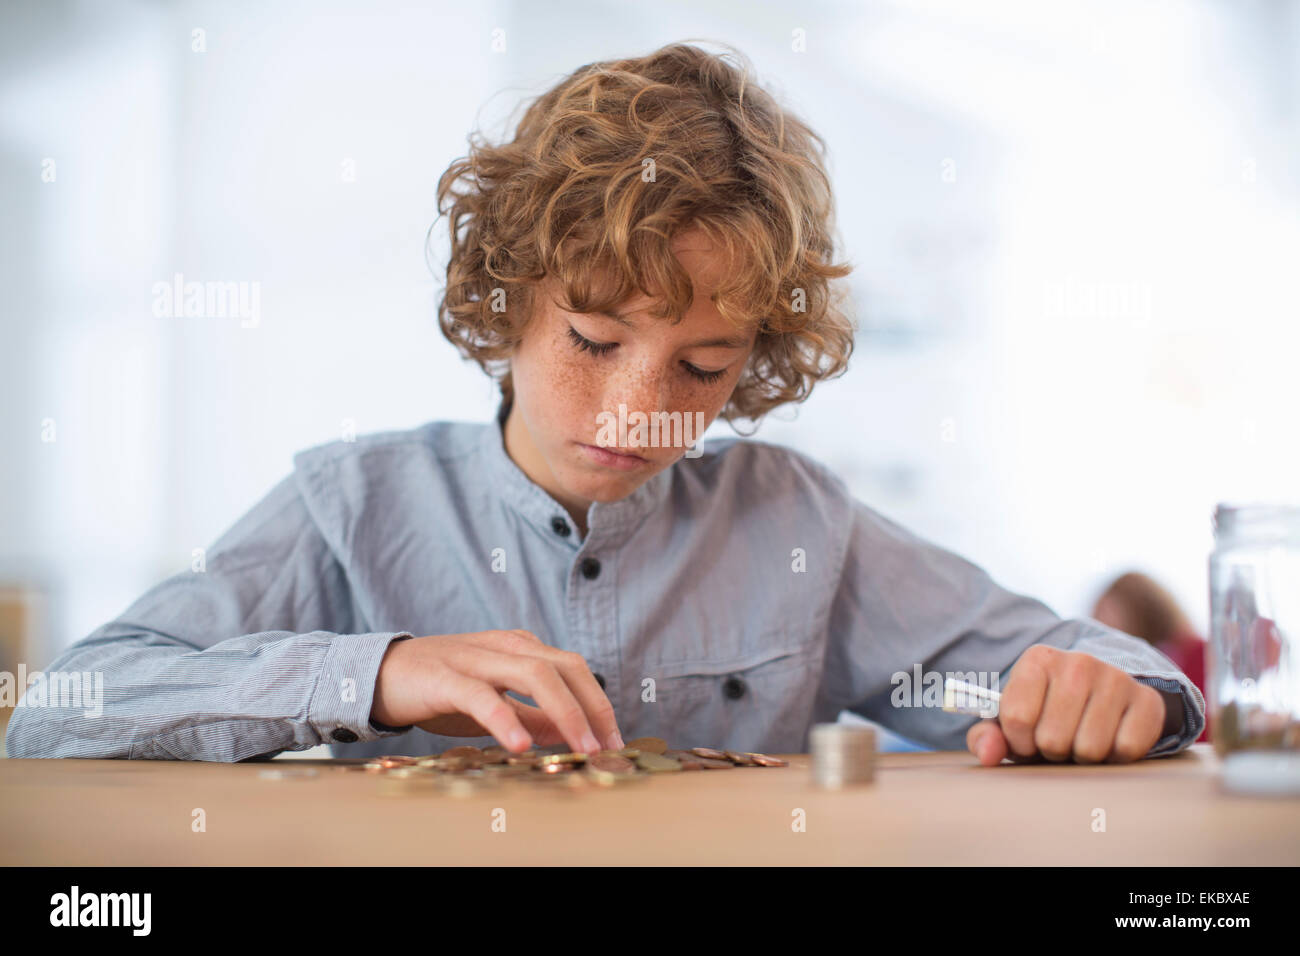 Teenage boy counting coins - Stock Image